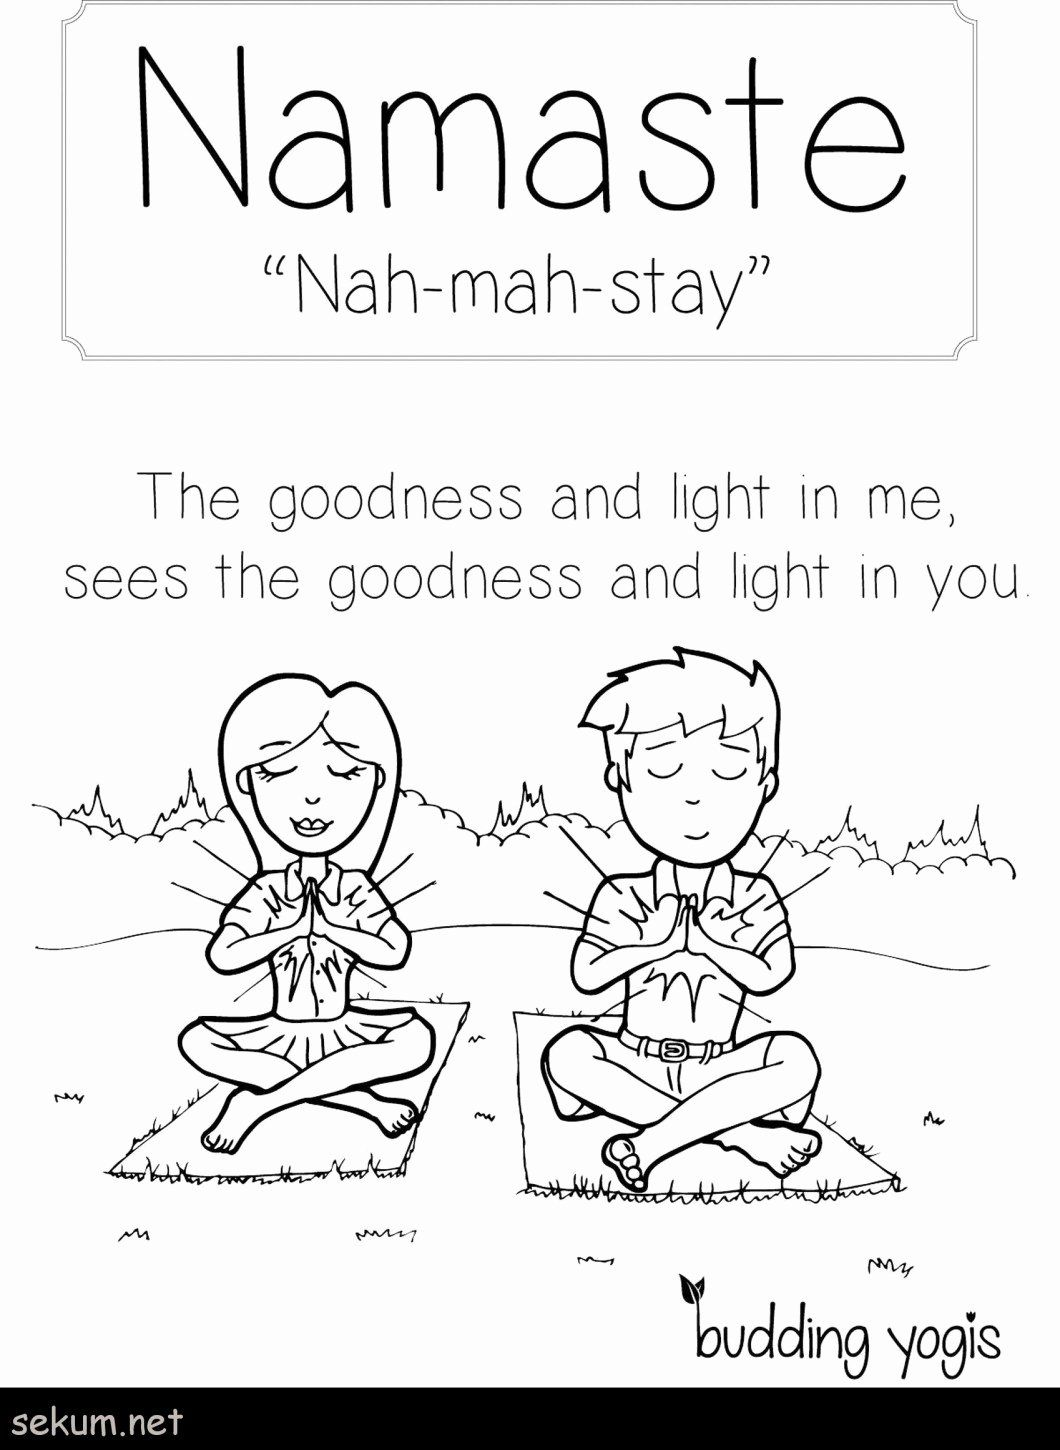 Yoga Coloring Pages To Print Gcssi Coloring Pages In 2020 Yoga Coloring Book Kids Yoga Poses Preschool Yoga